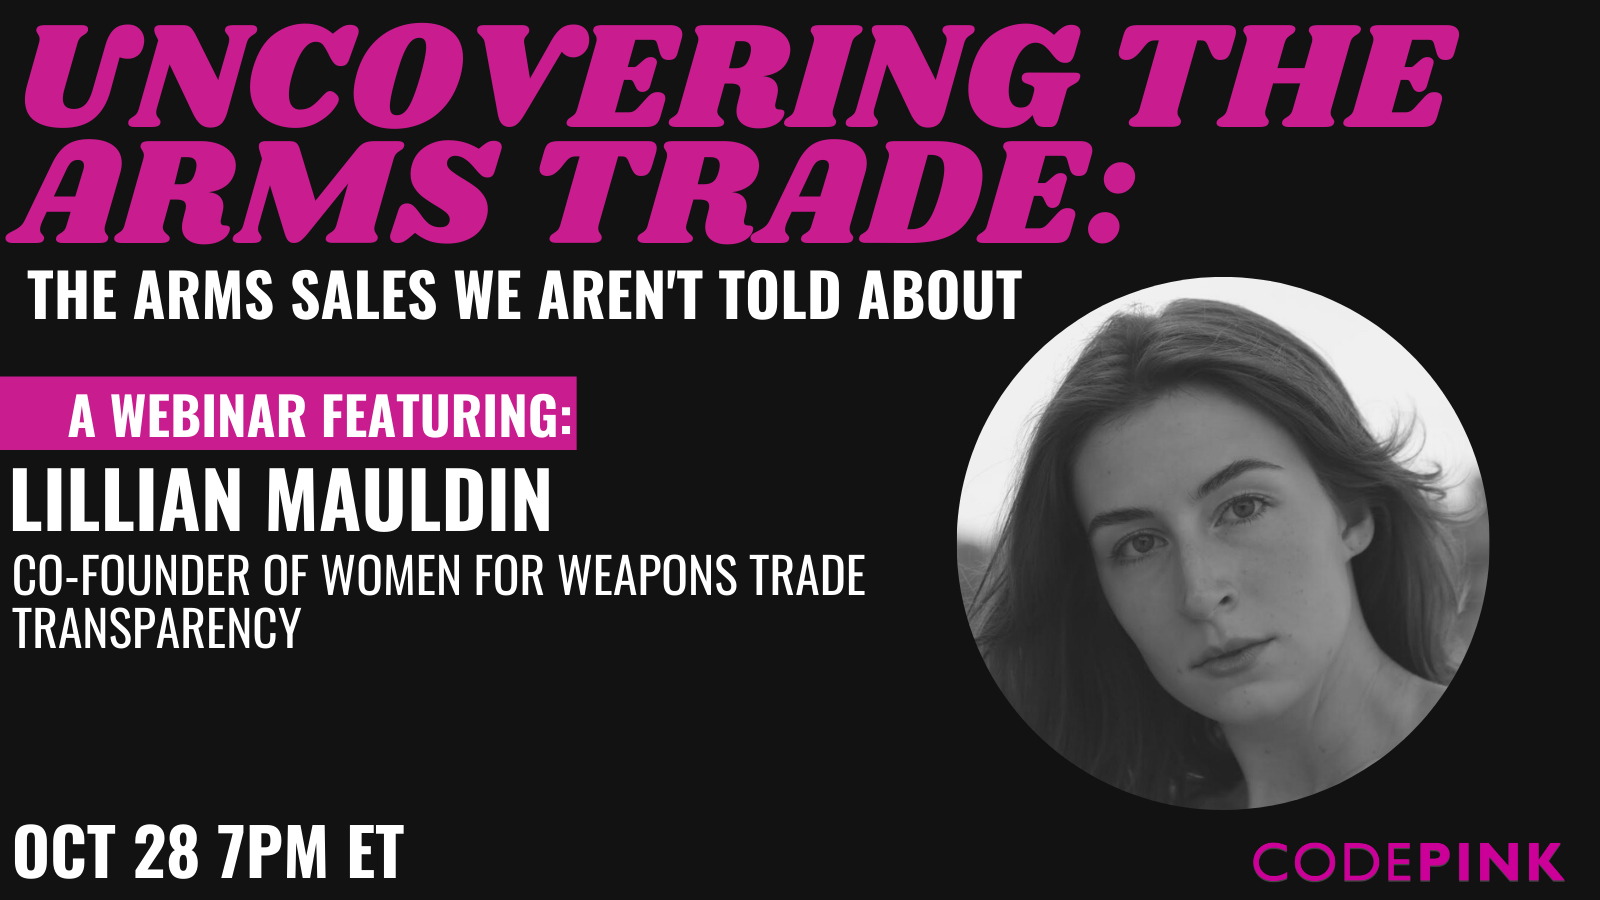 Uncovering the Arms Trade: The Arms Sales We Aren't Told About